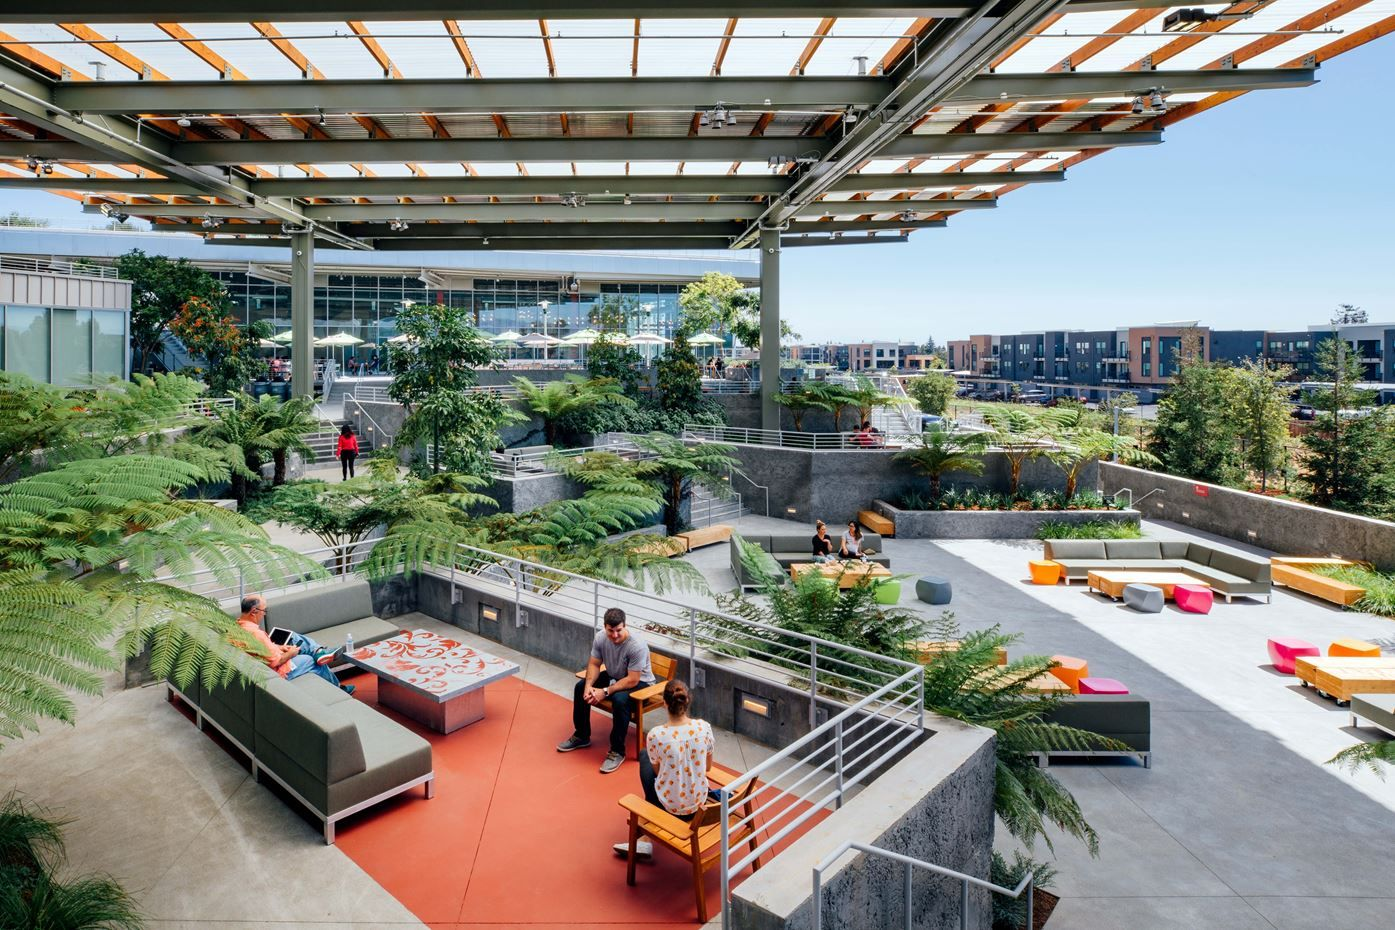 Facebook Campus Expansion Picture Gallery Roof Garden